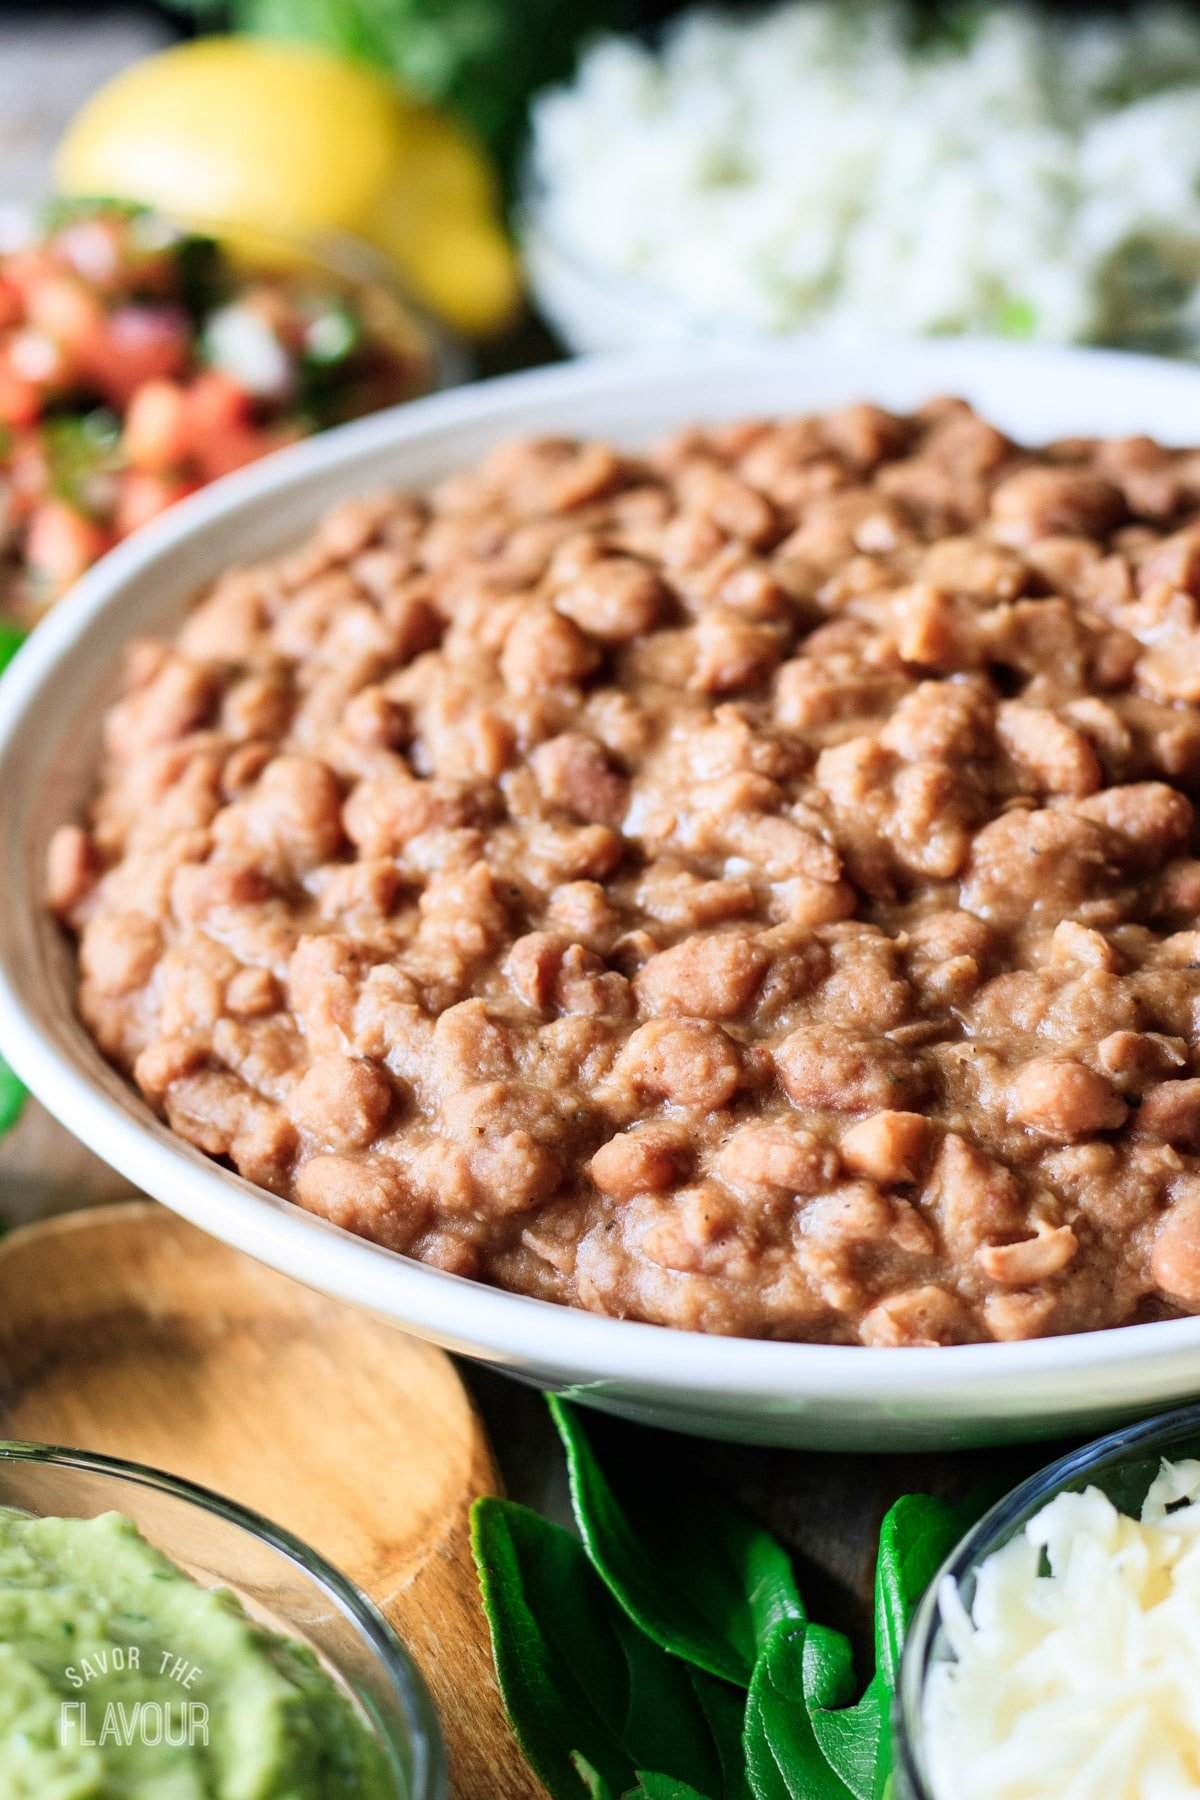 a bowl of Chipotle pinto beans with a wooden spoon